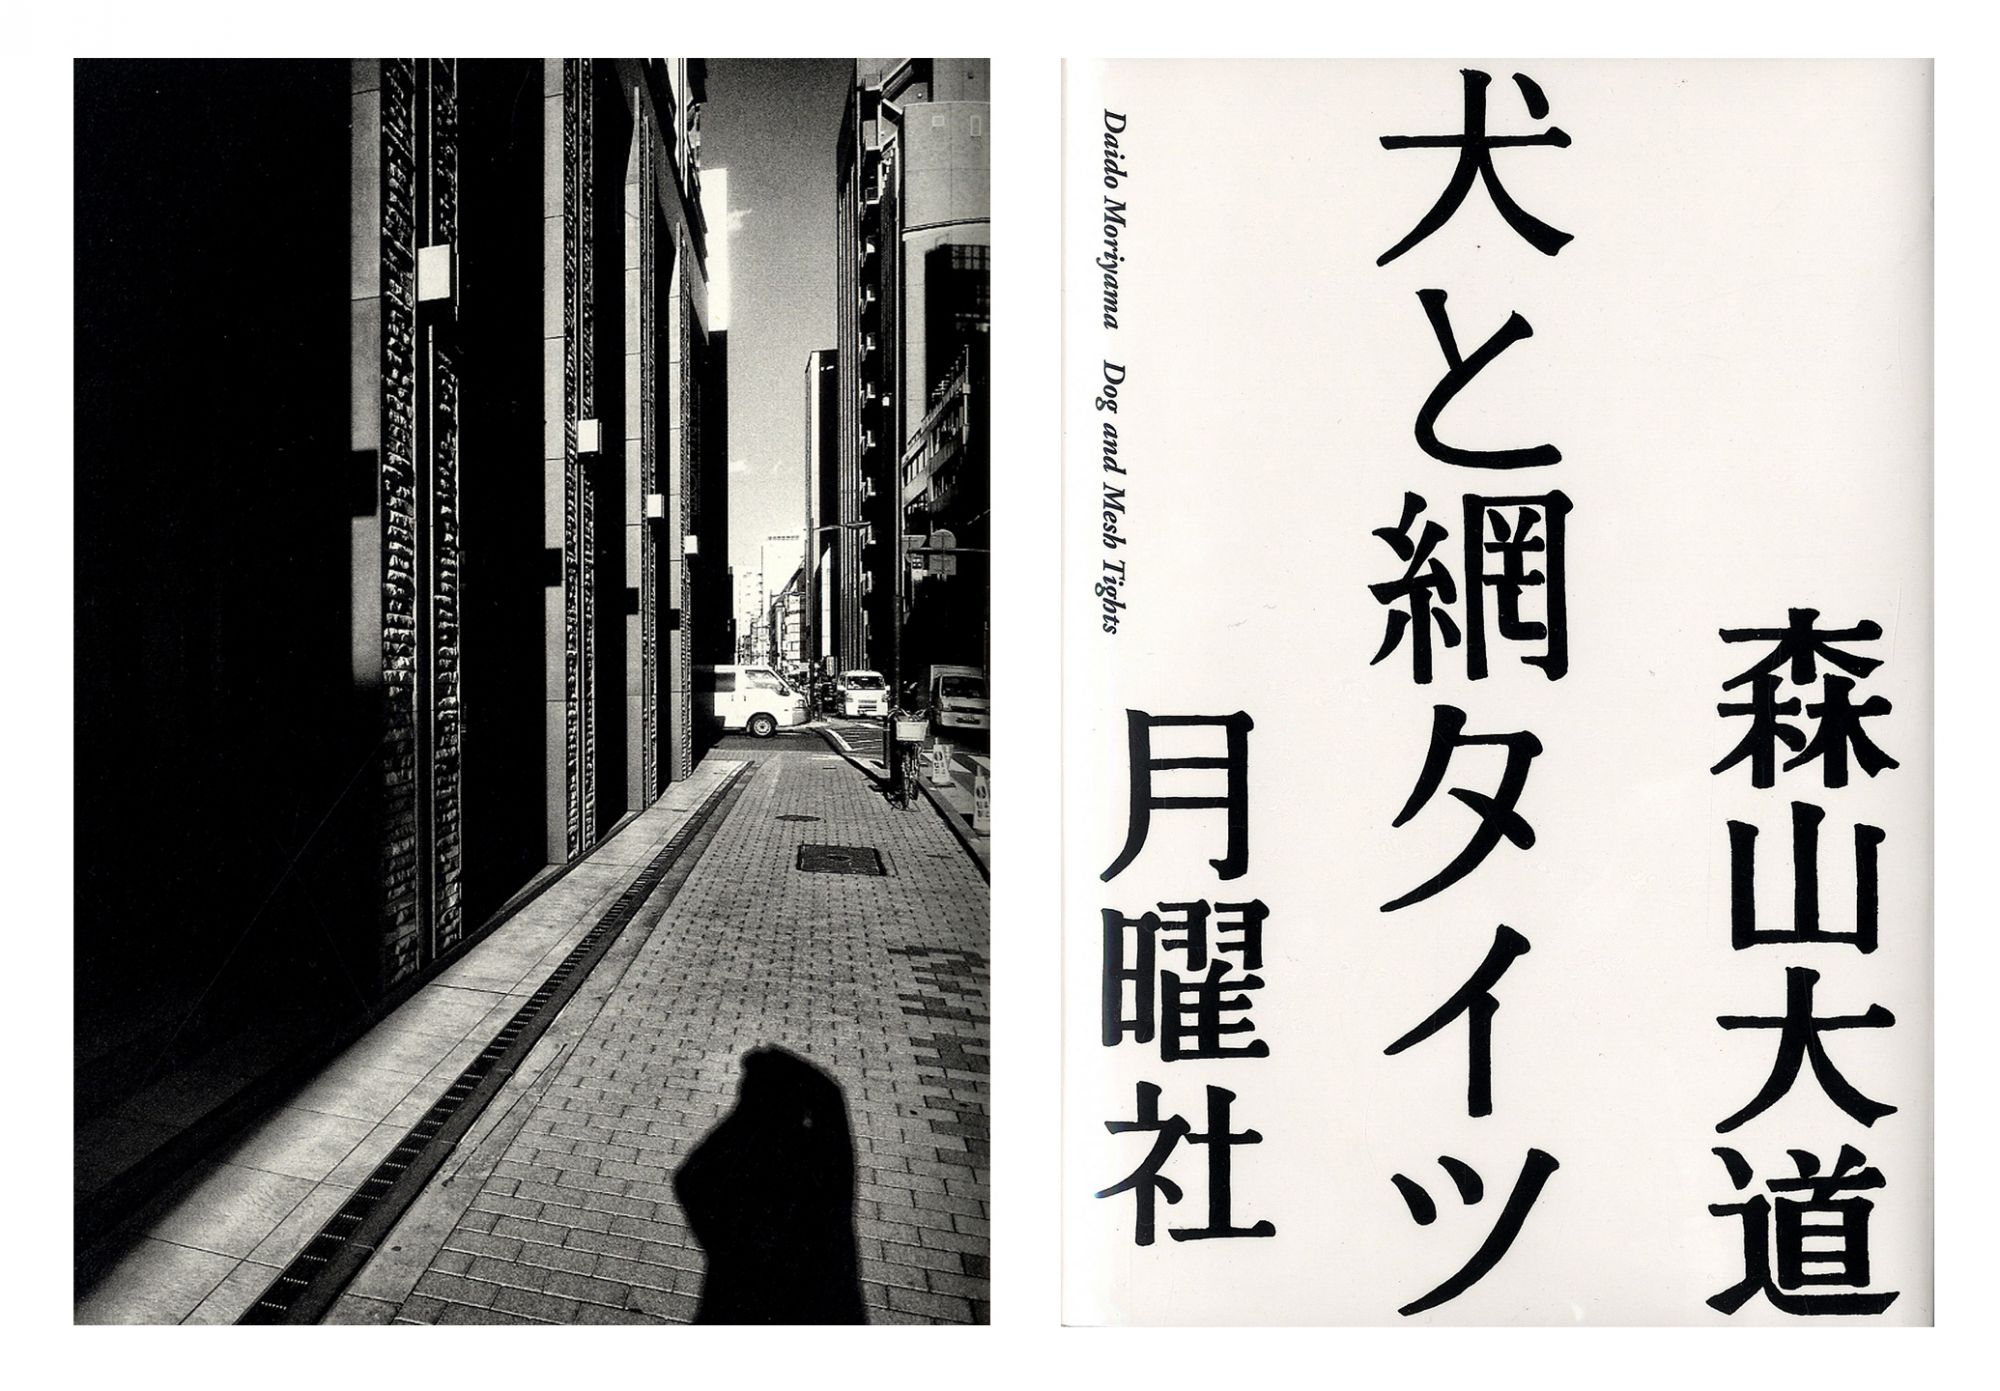 Daido Moriyama: Dog and Meshtights, Limited Edition (with Print Version D) [SIGNED]